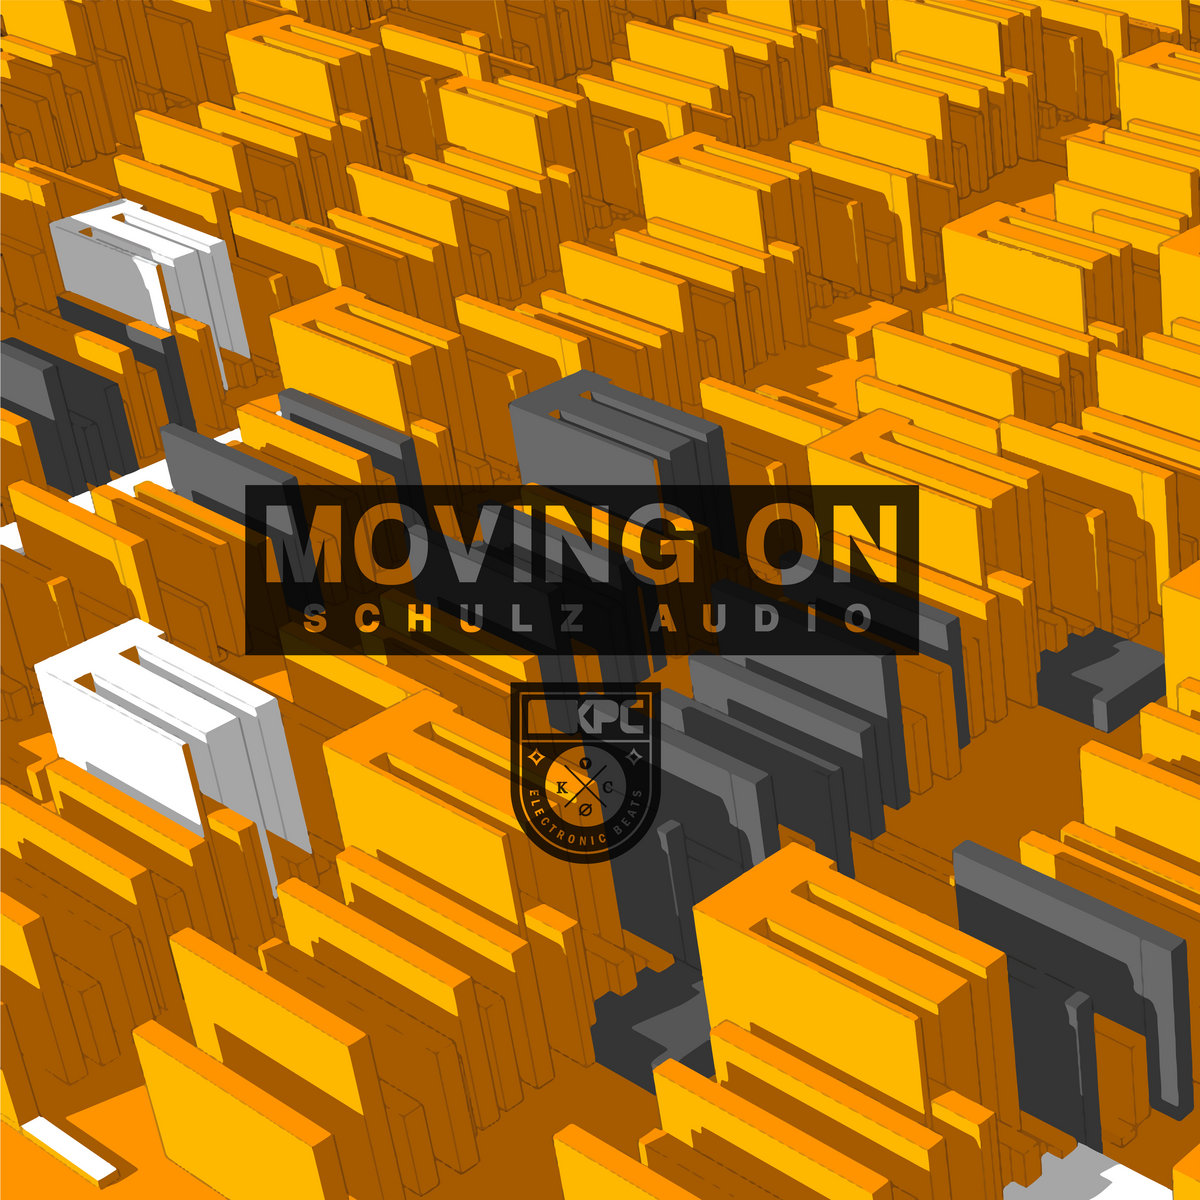 Schulz Audio – Moving On